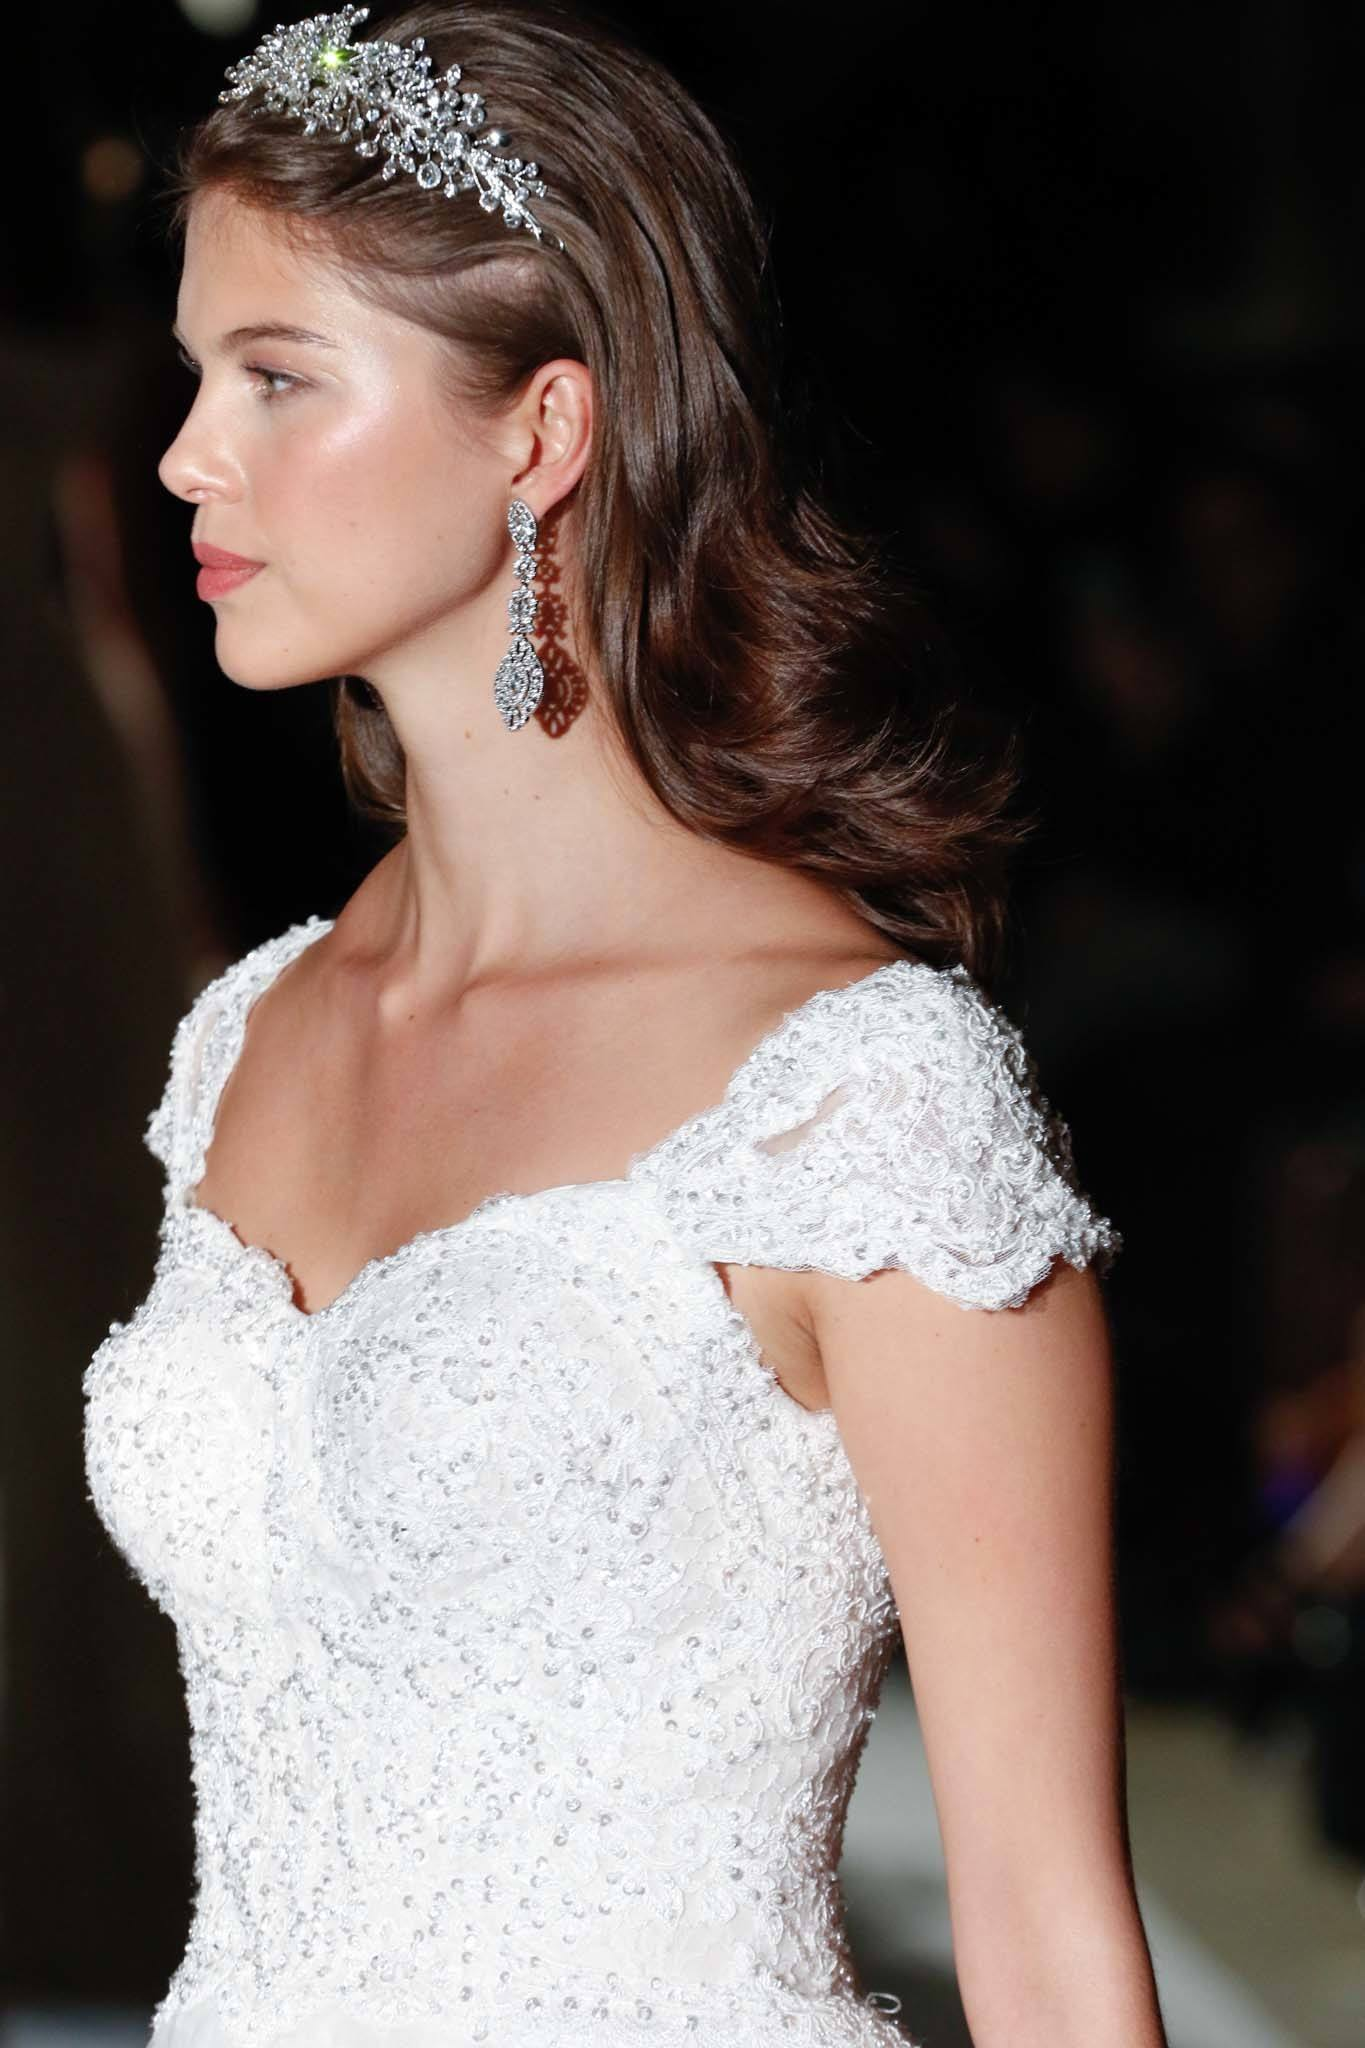 24 Simple Wedding Hairstyles for the Chic, Unfussy Bride